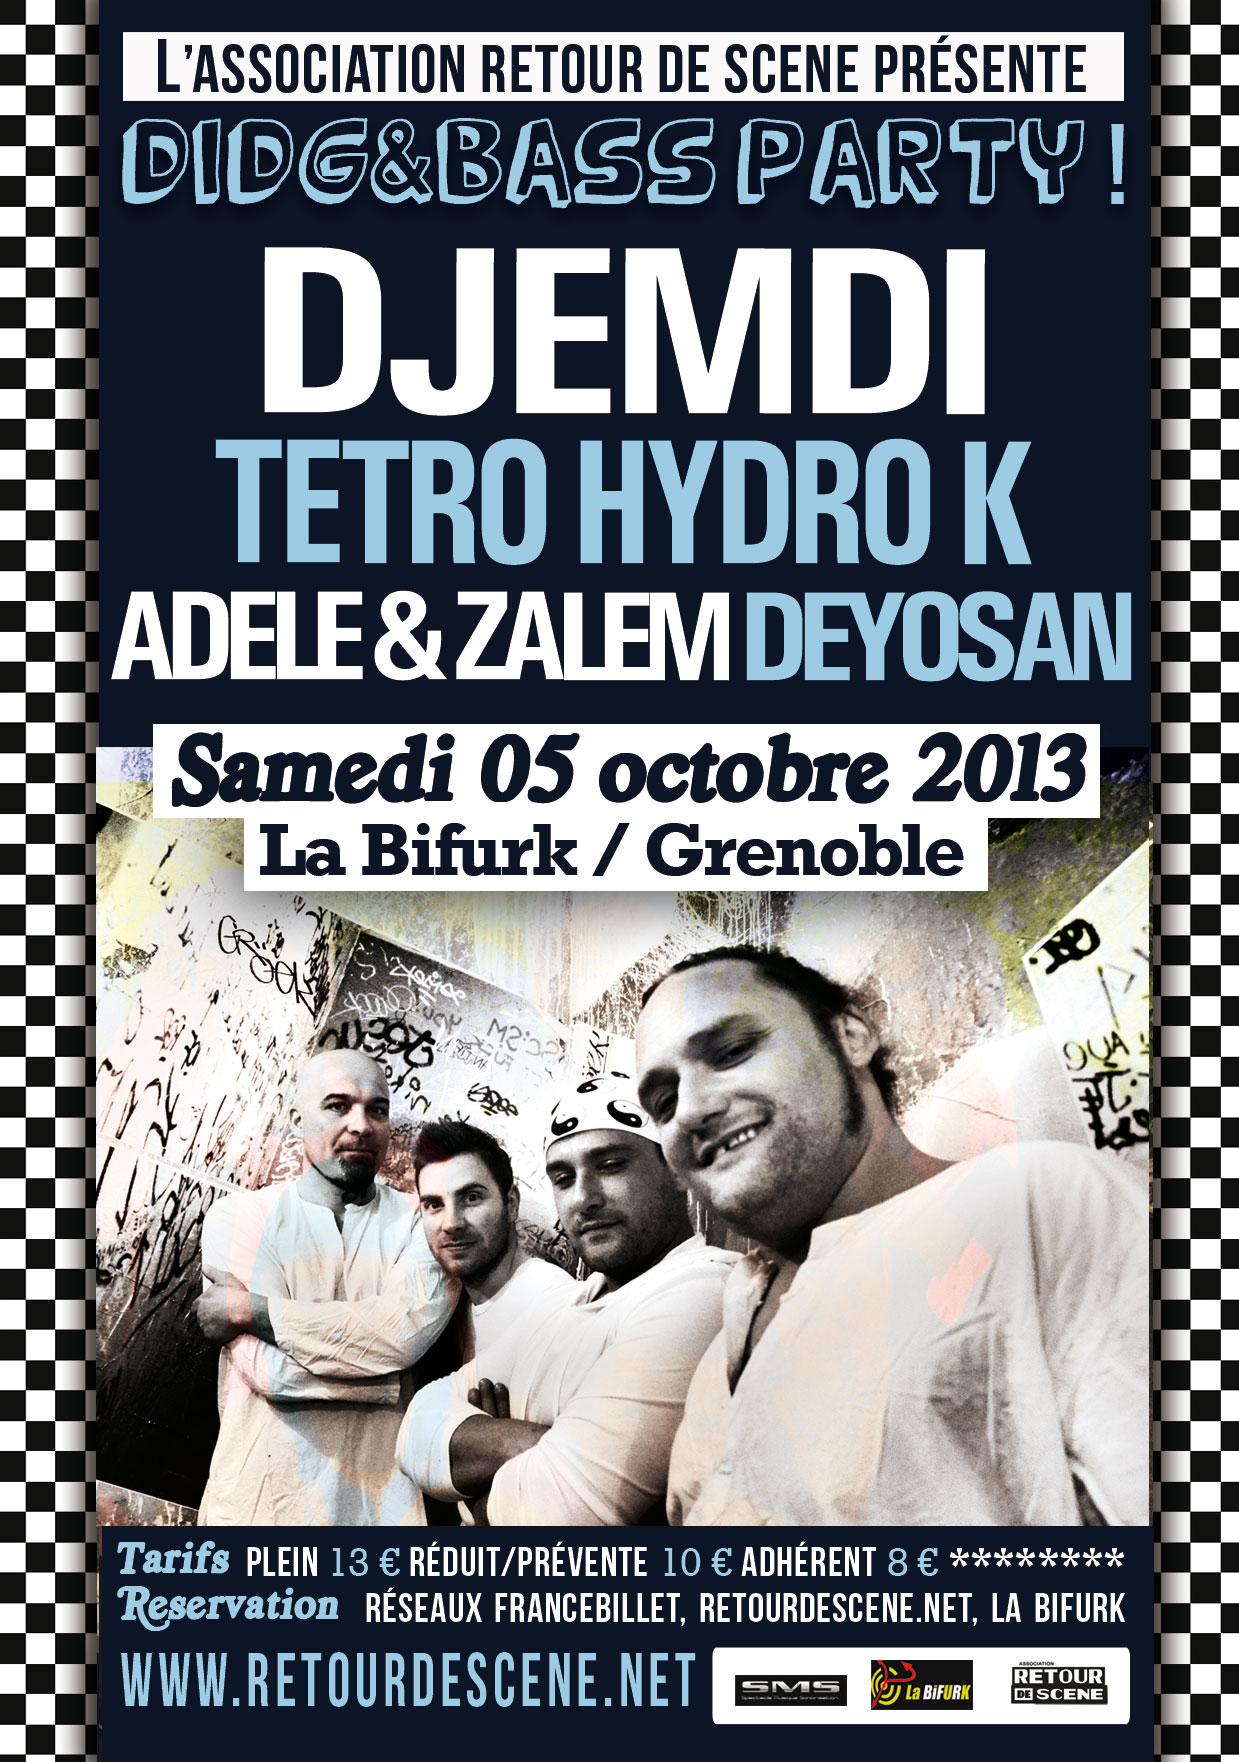 Didg & Bass Party - La Bifurk - 05/10/2013